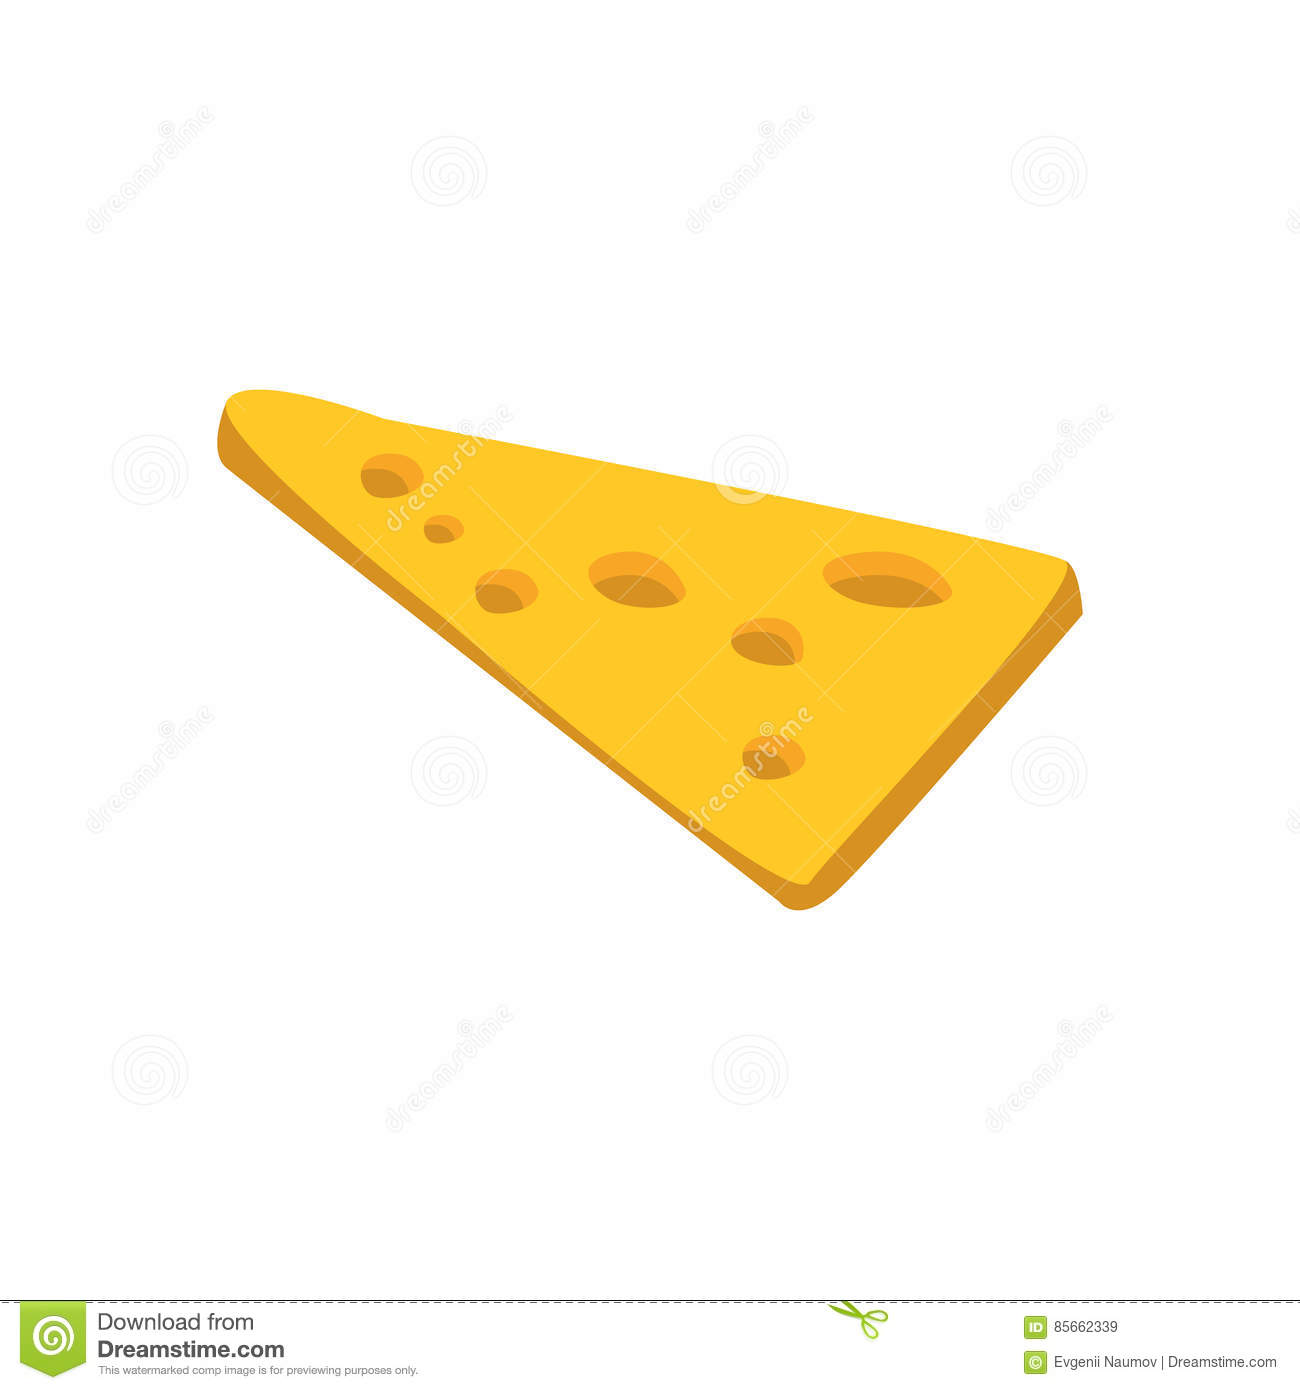 Cheese Clipart Royalty Free Stock Image - Image: 25901176